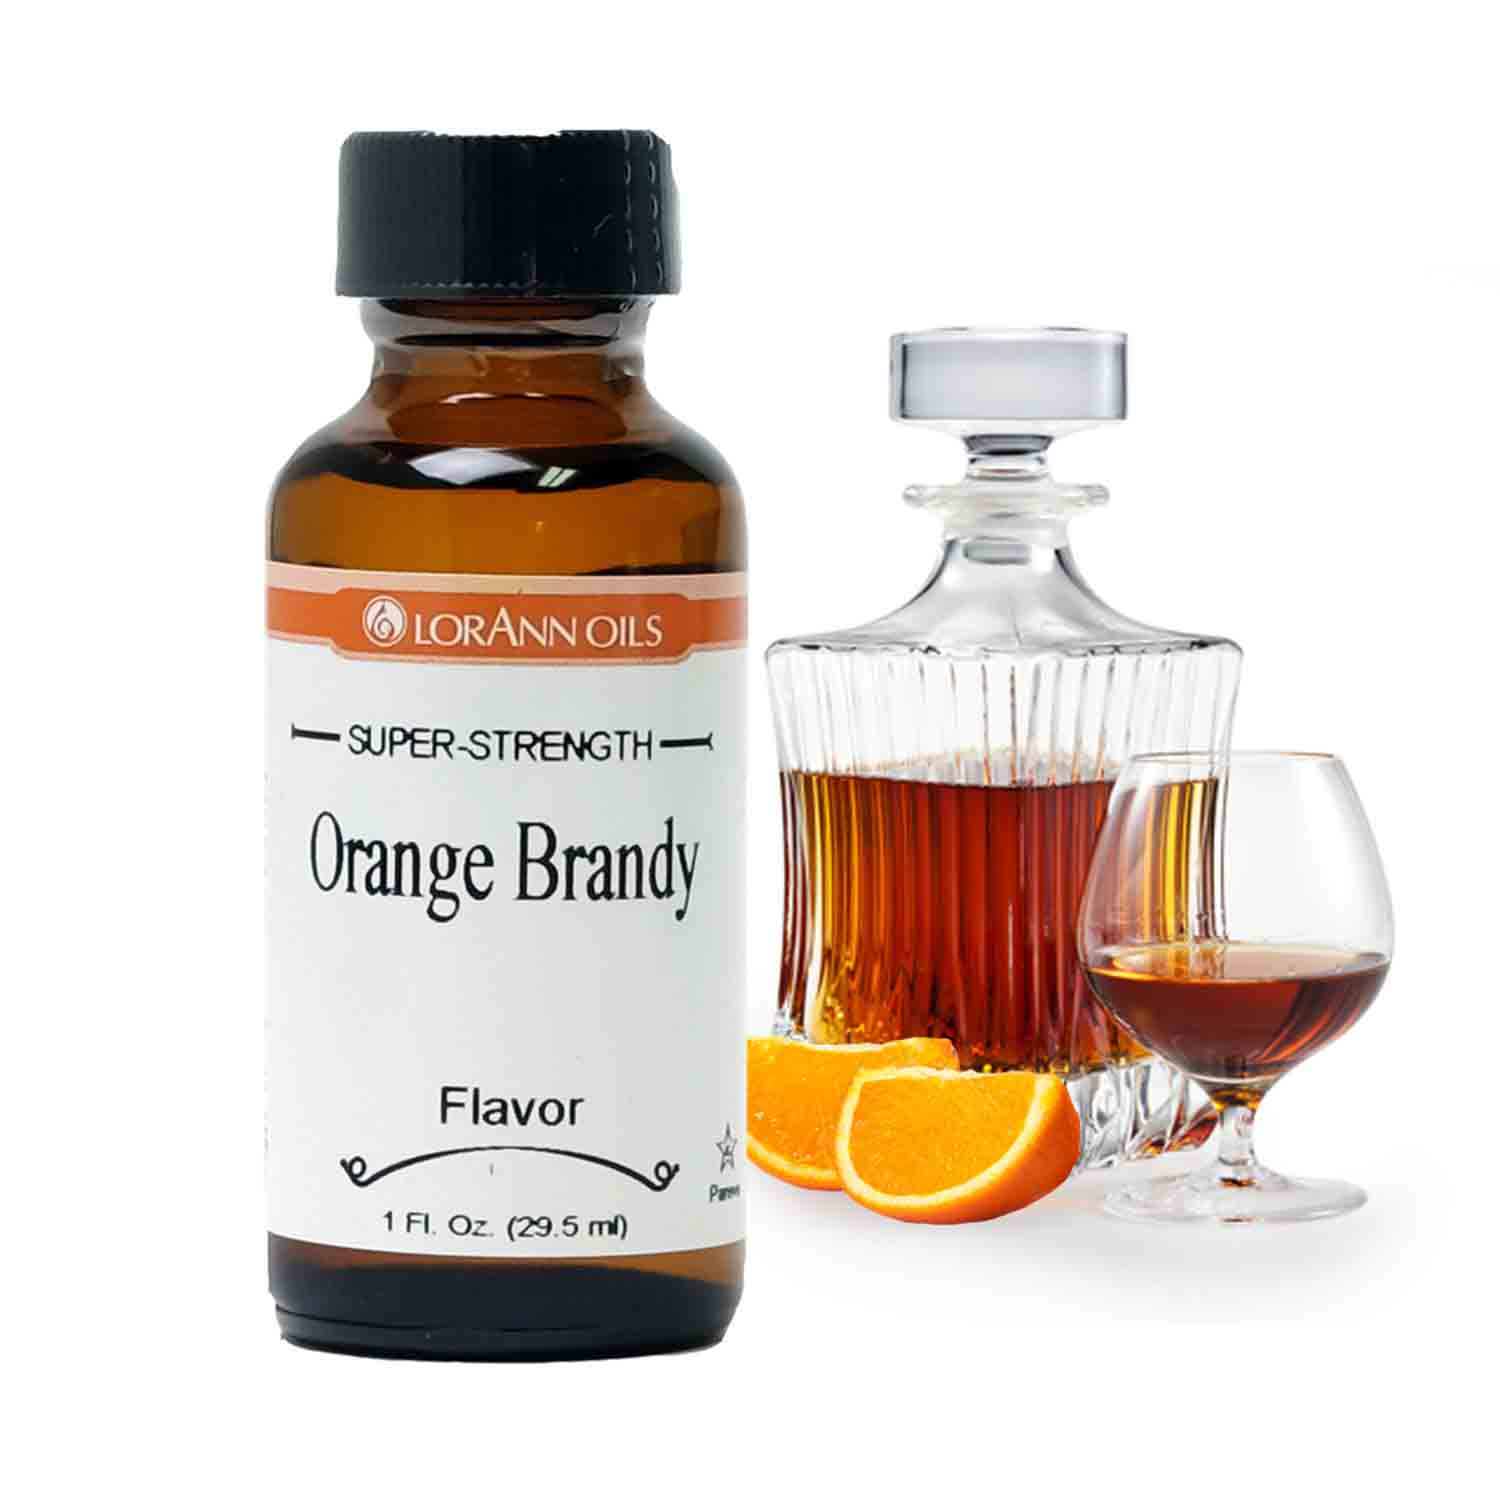 Orange Brandy Super-Strength Flavor